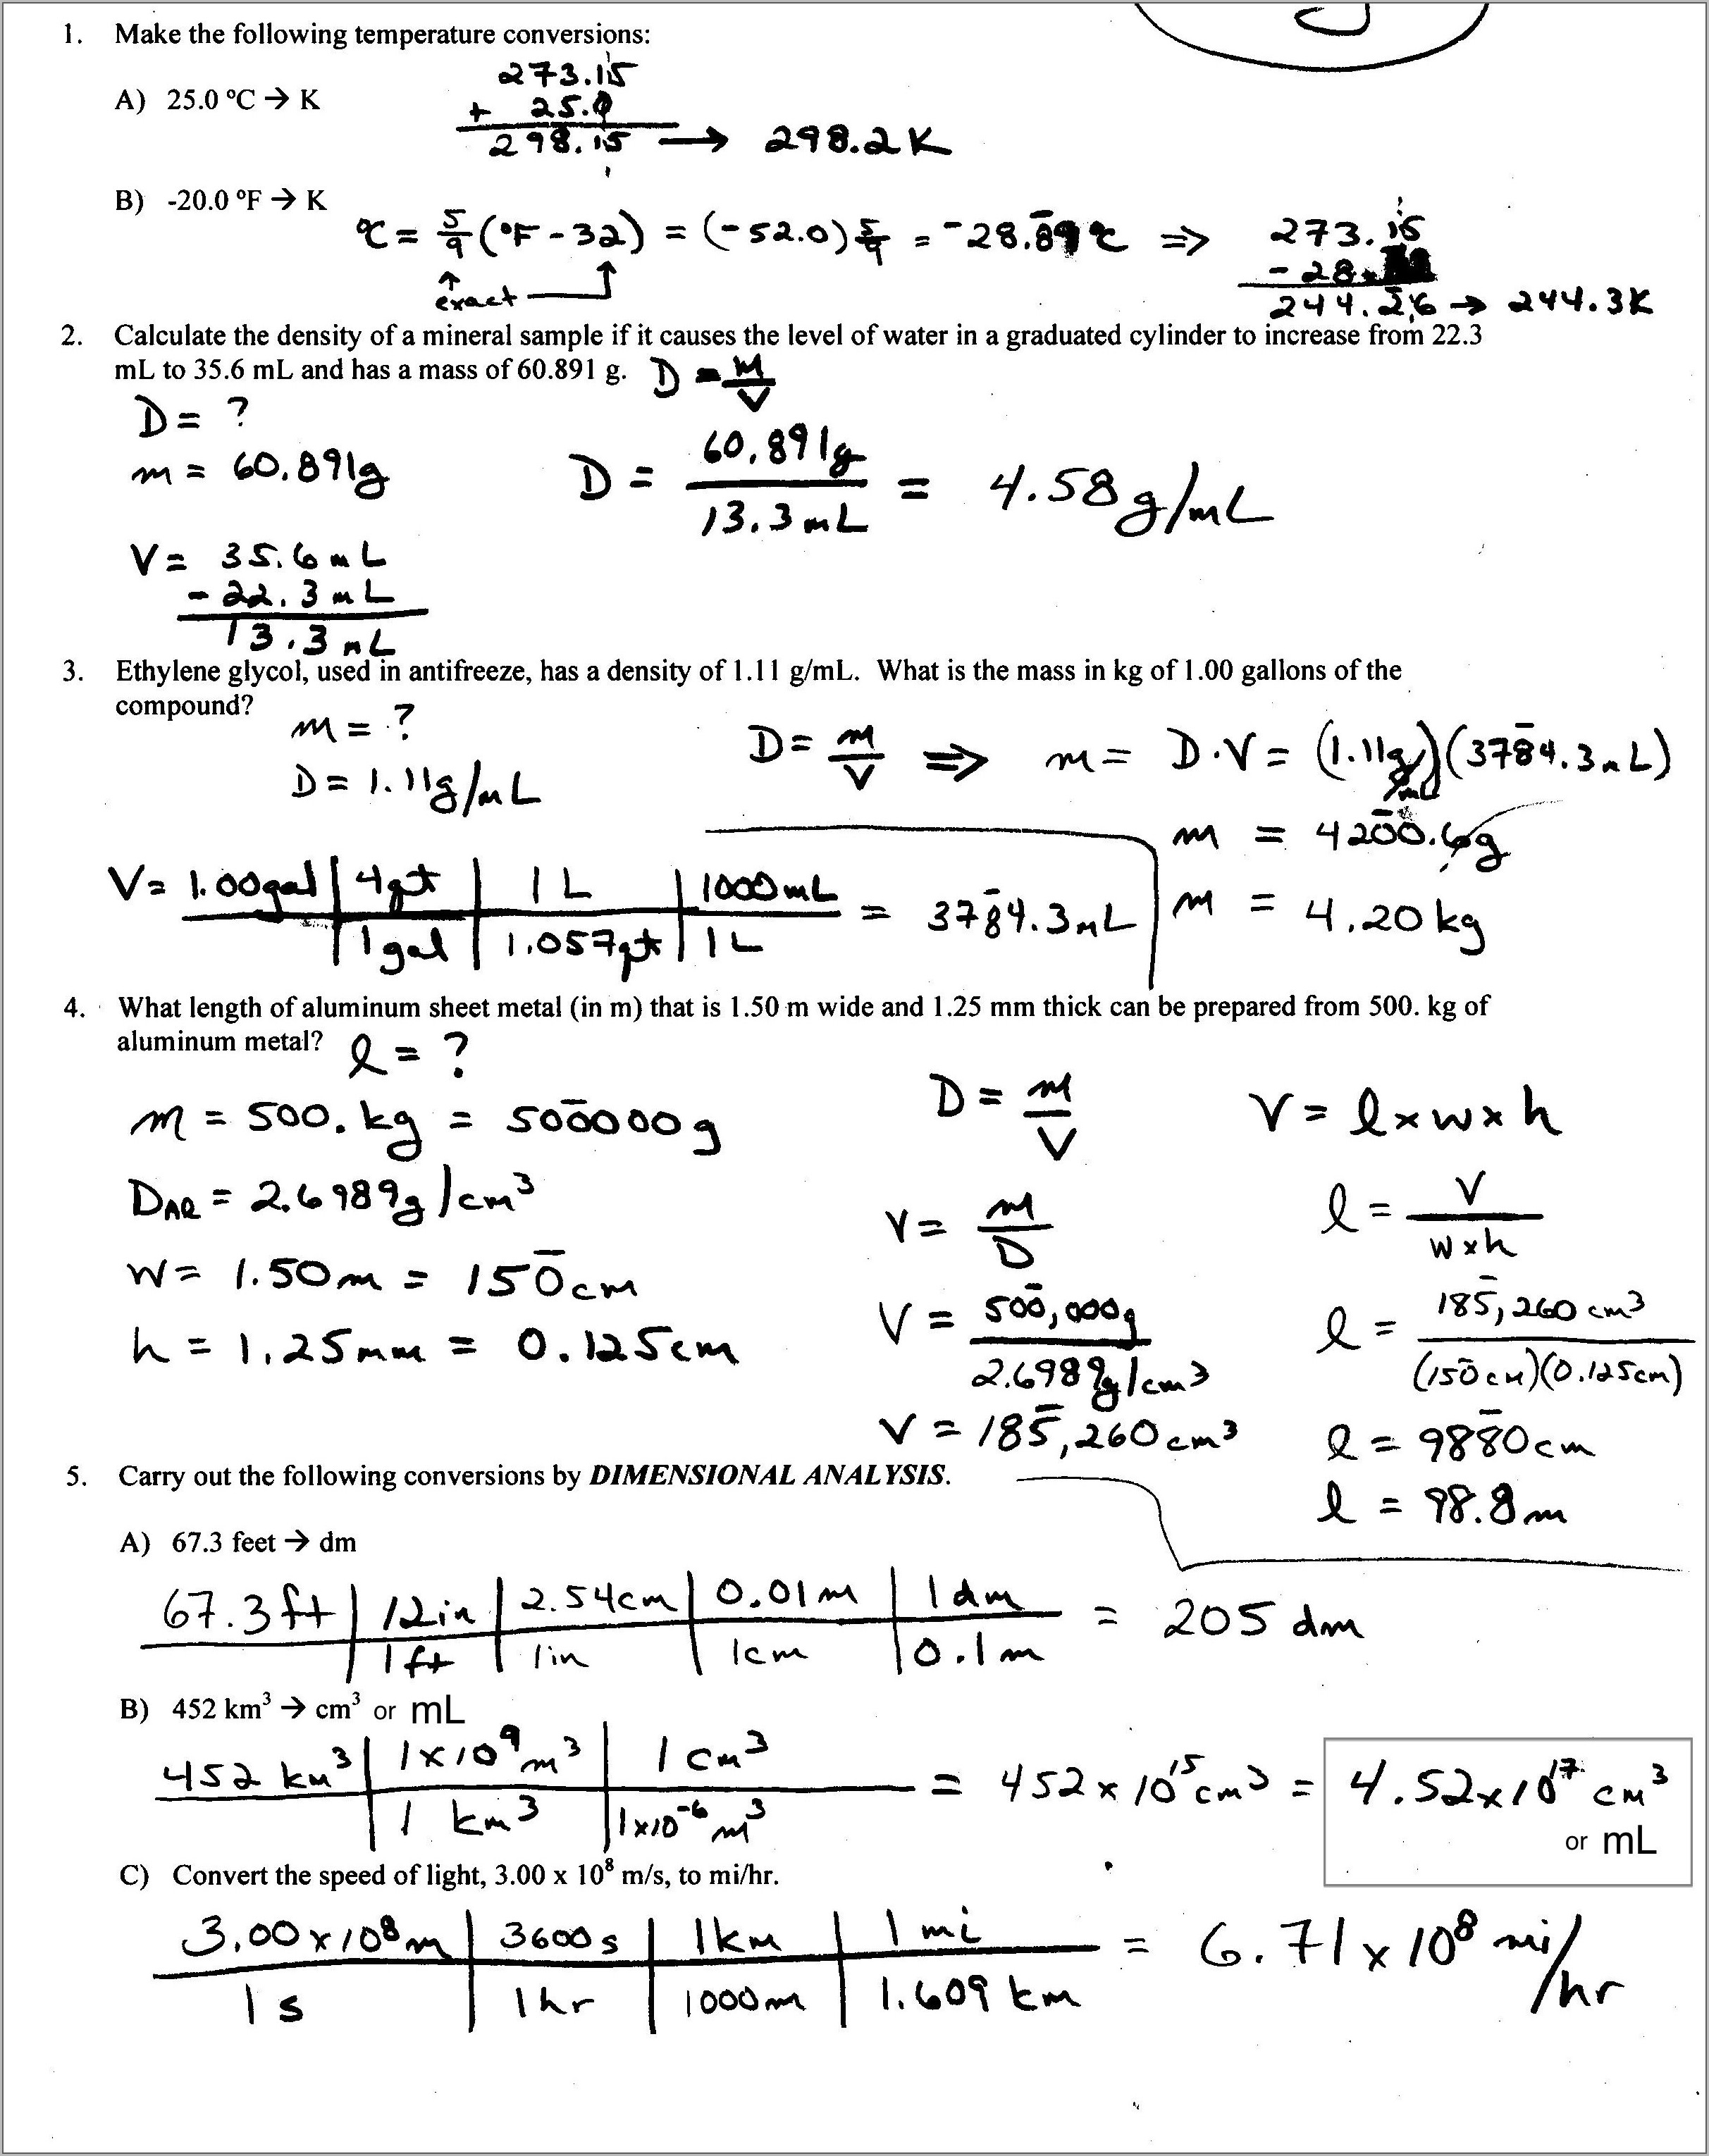 Grade 5 Math Word Problems Worksheet Answers Worksheet